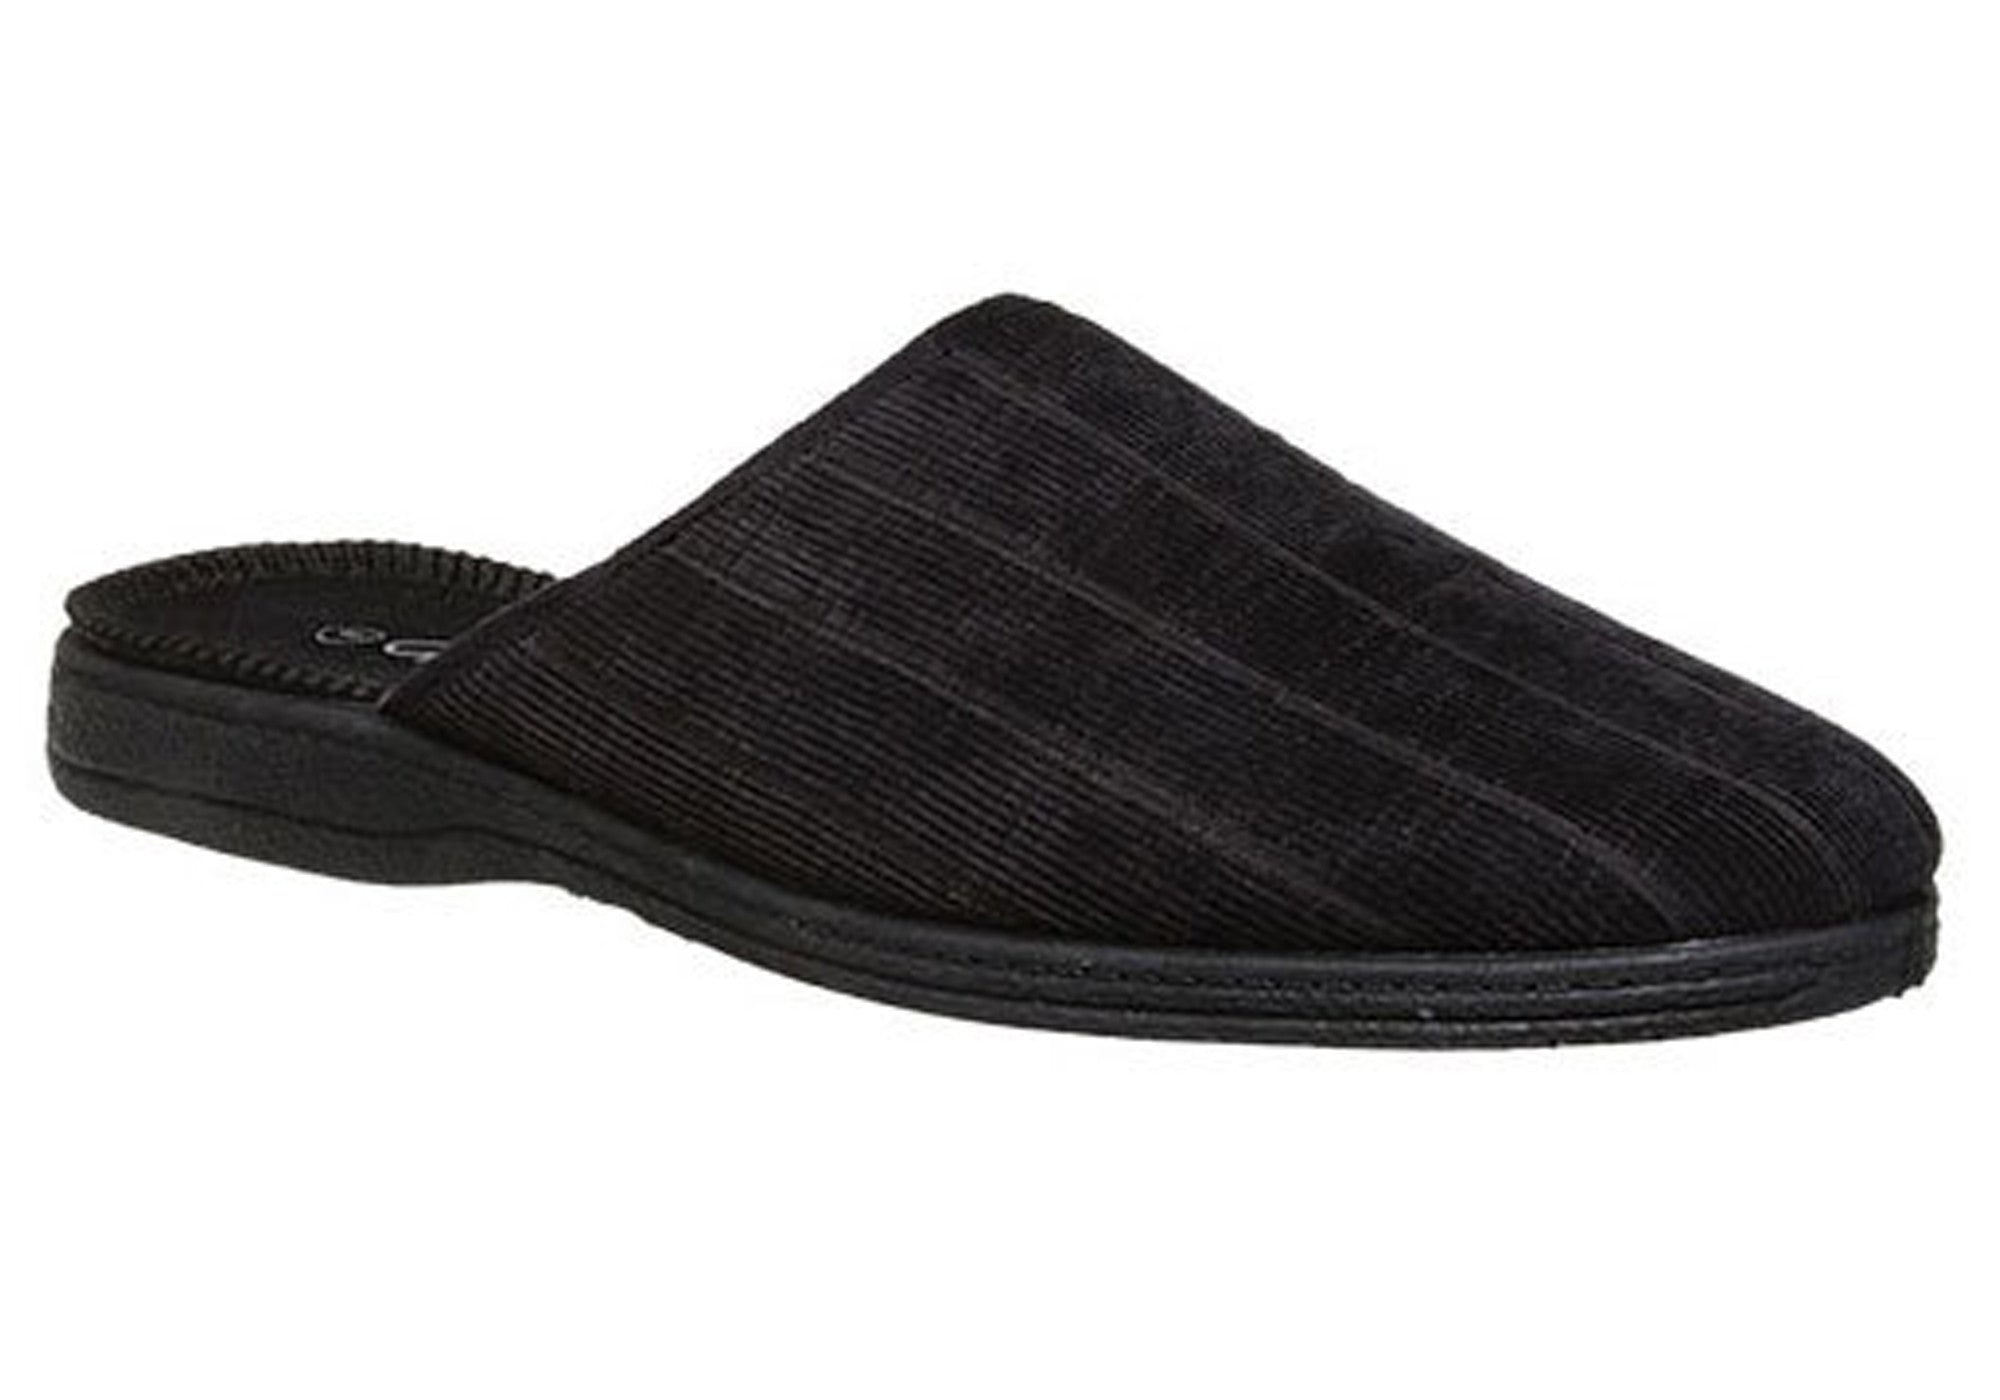 ecc0d2a12e3a8 Grosby Tod Mens Comfortable Slip On Indoor Slippers